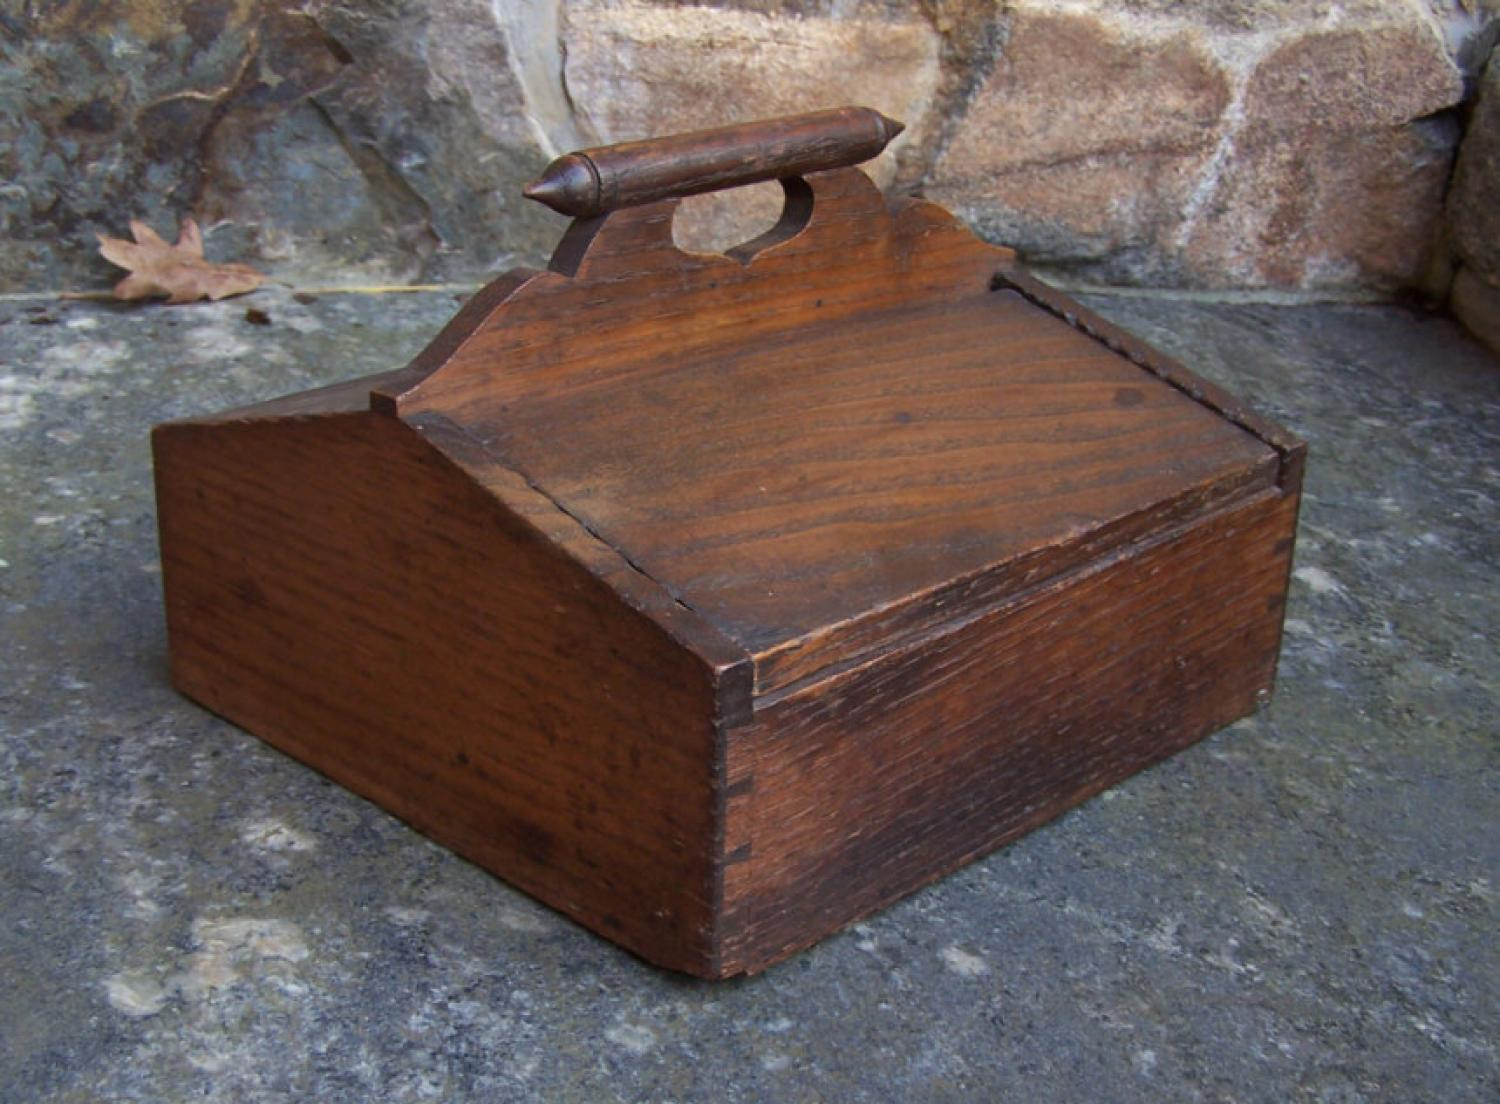 Country kitchen chestnut cutlery box c1860